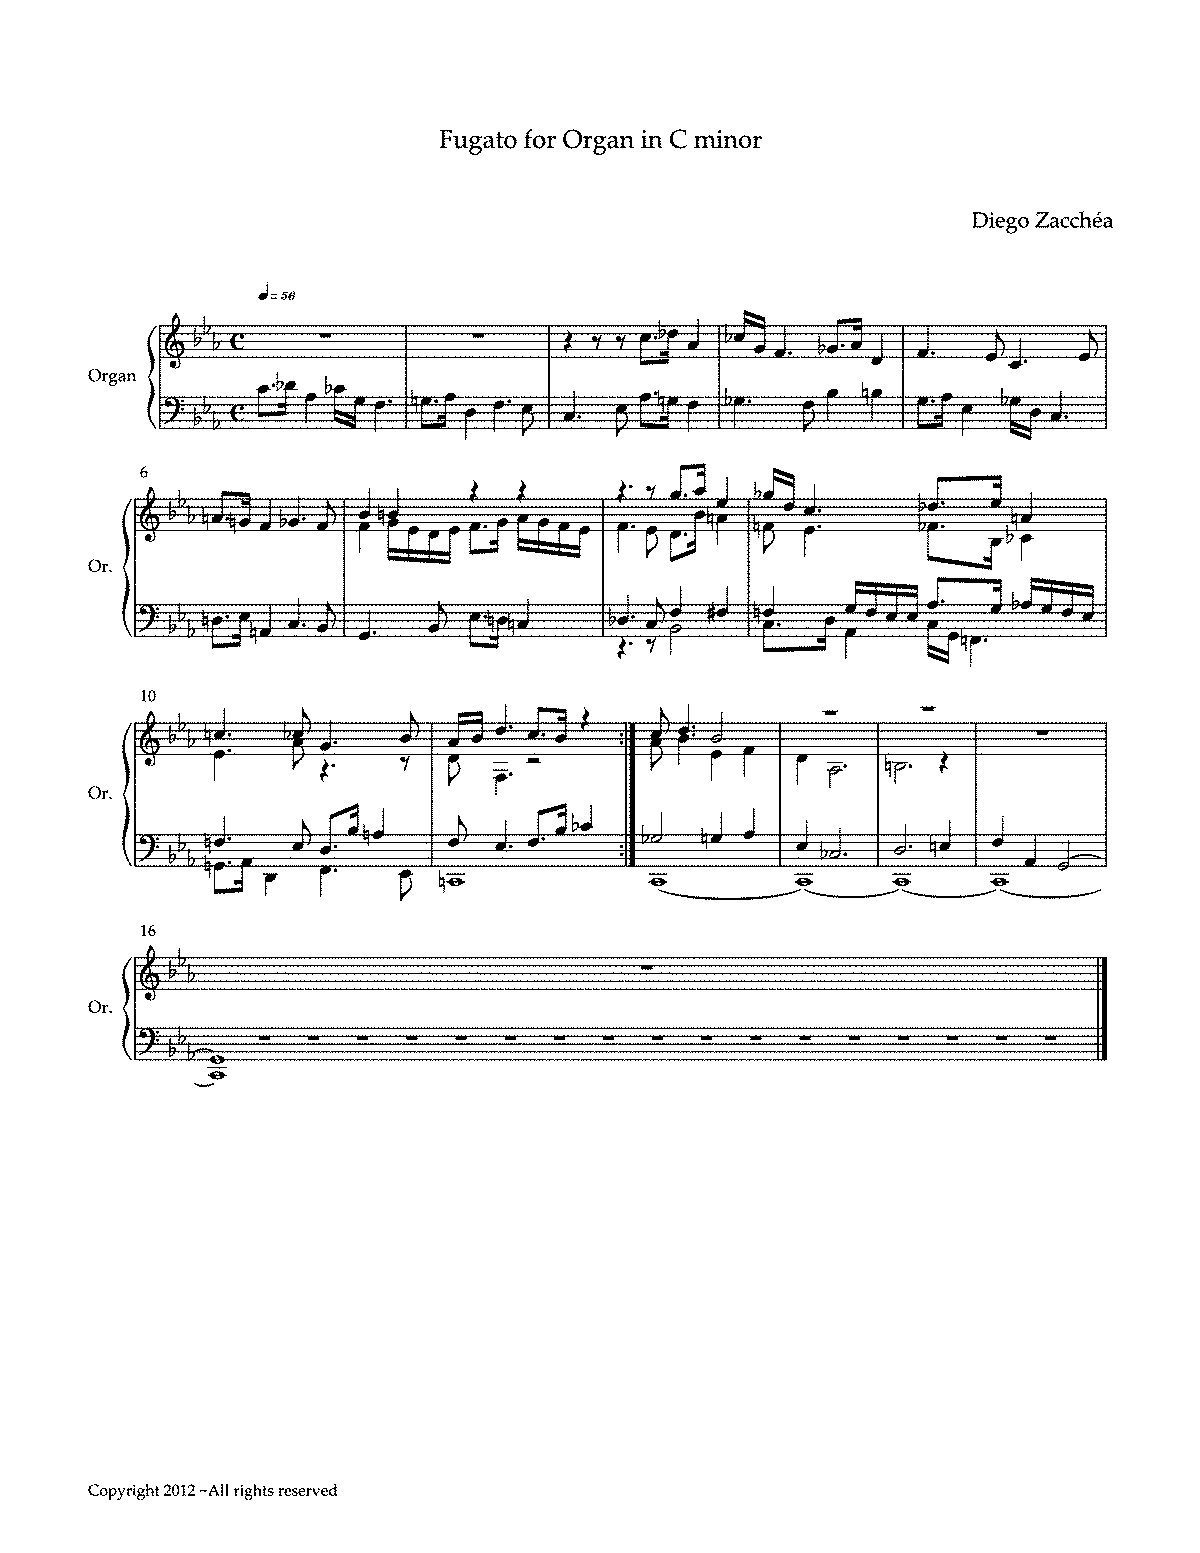 PMLP395484-Fugato for Organ in C minor by Diego Zacchéa.pdf